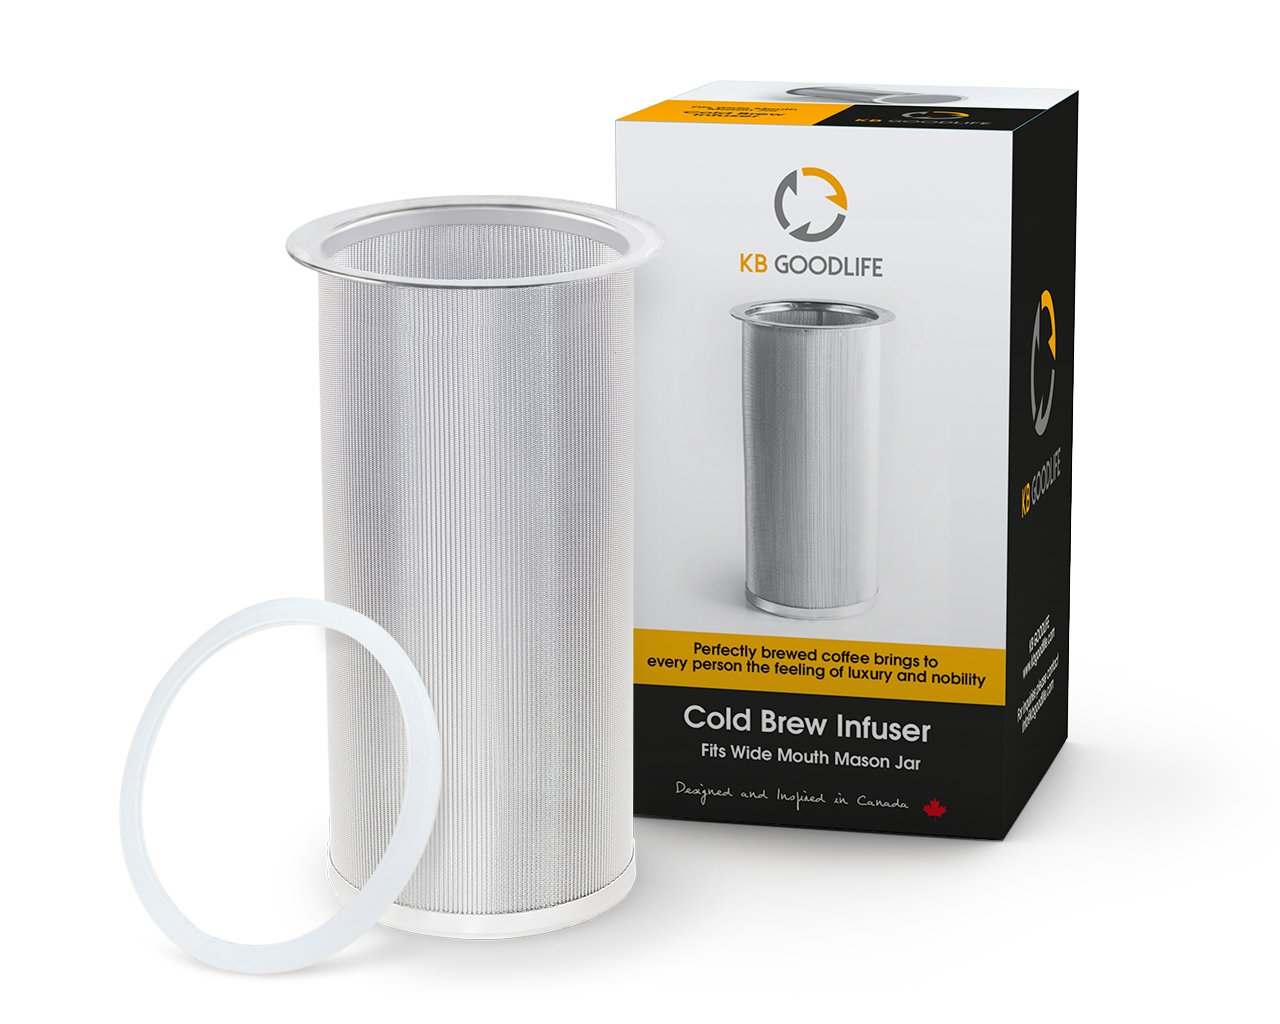 Reusable Cold Brew Coffee Filter Or Loose Leaf Tea Infuser - Our Cold Brew Mason Jar Filter Fits All Wide Mouth Mason Jars. Make This Stainless Steel Coffee Filter A Part Of Your Kitchen Today.